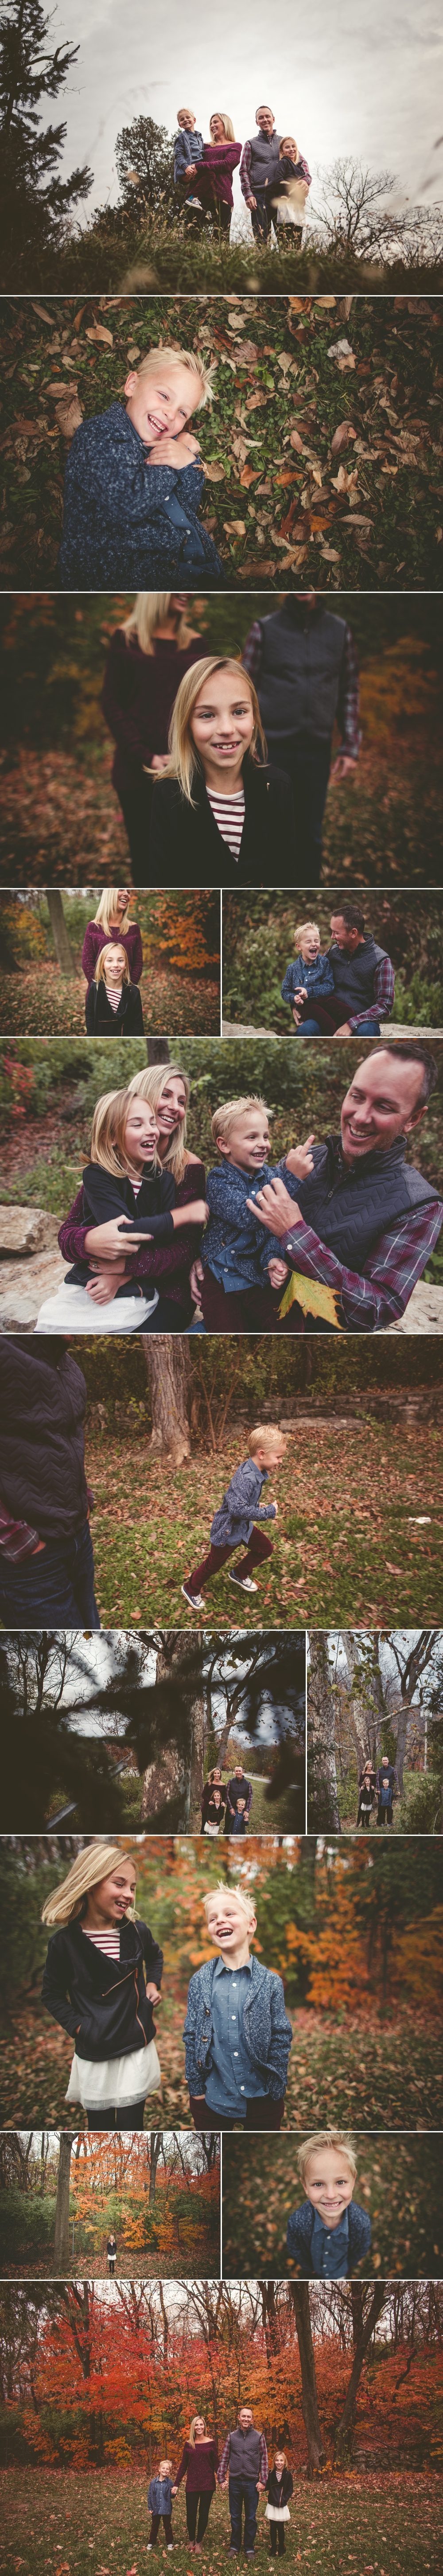 jason_domingues_photography_best_kansas_city_photographer_kc_photography_family_portraits_roanoke_park